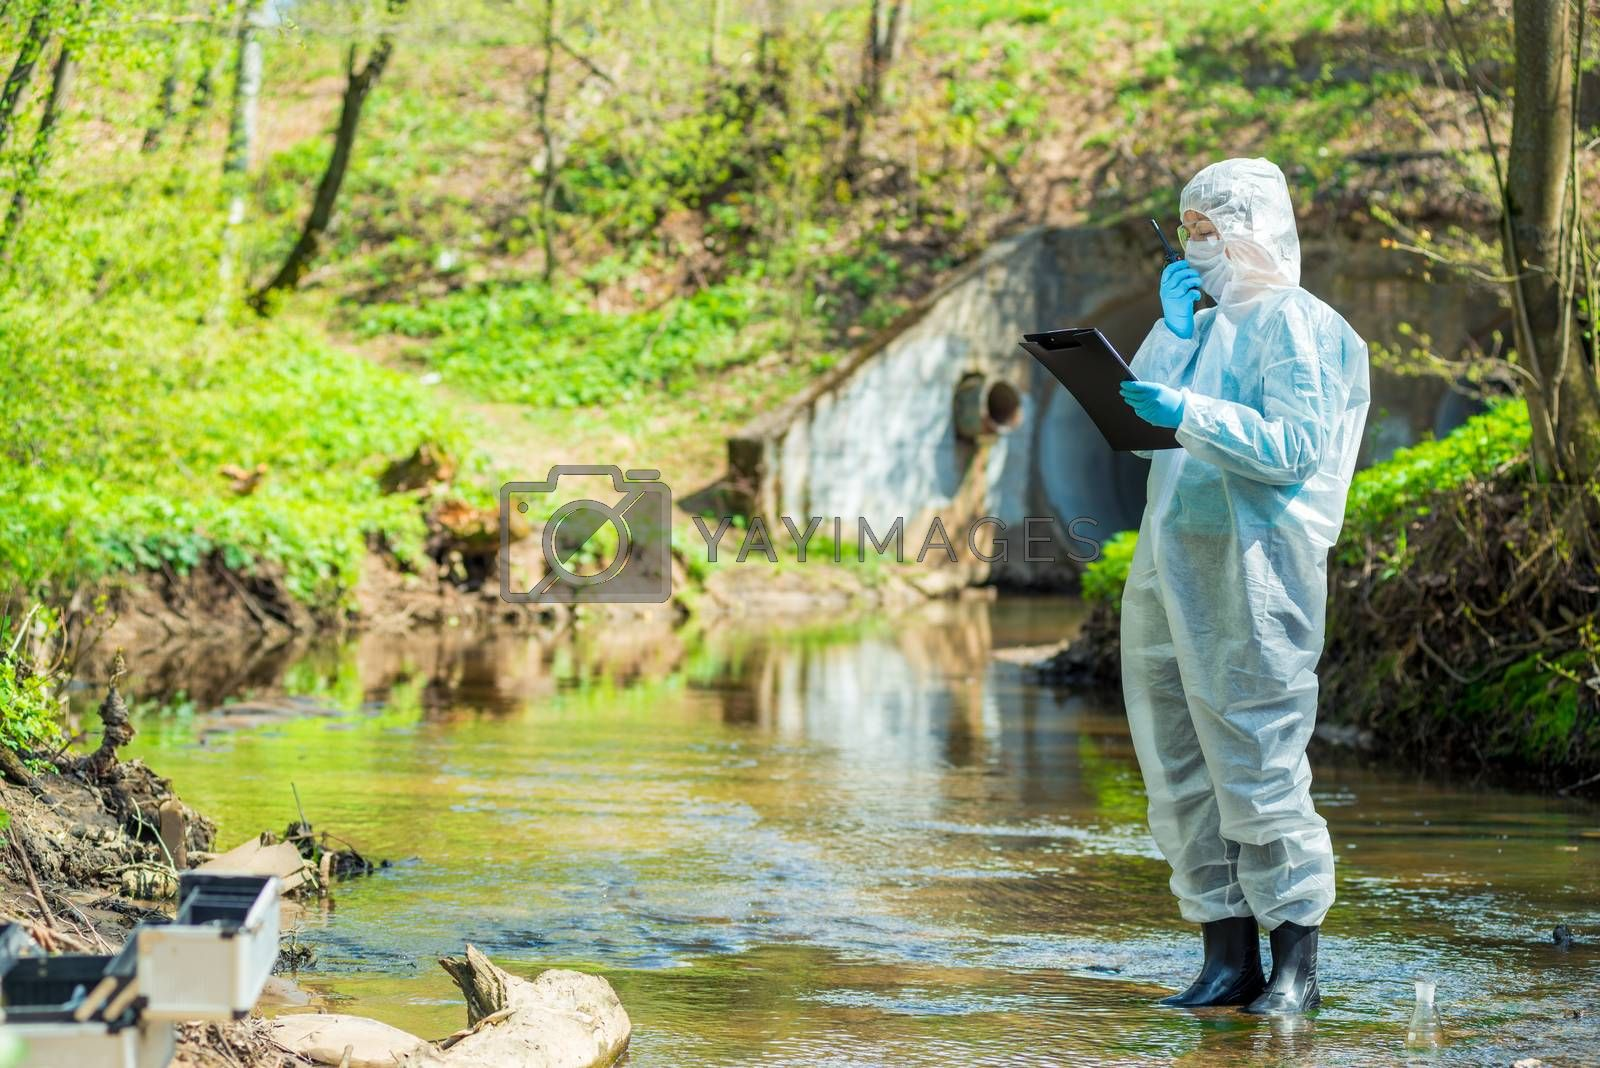 scientist doing research on the environment and water in the sewer creek